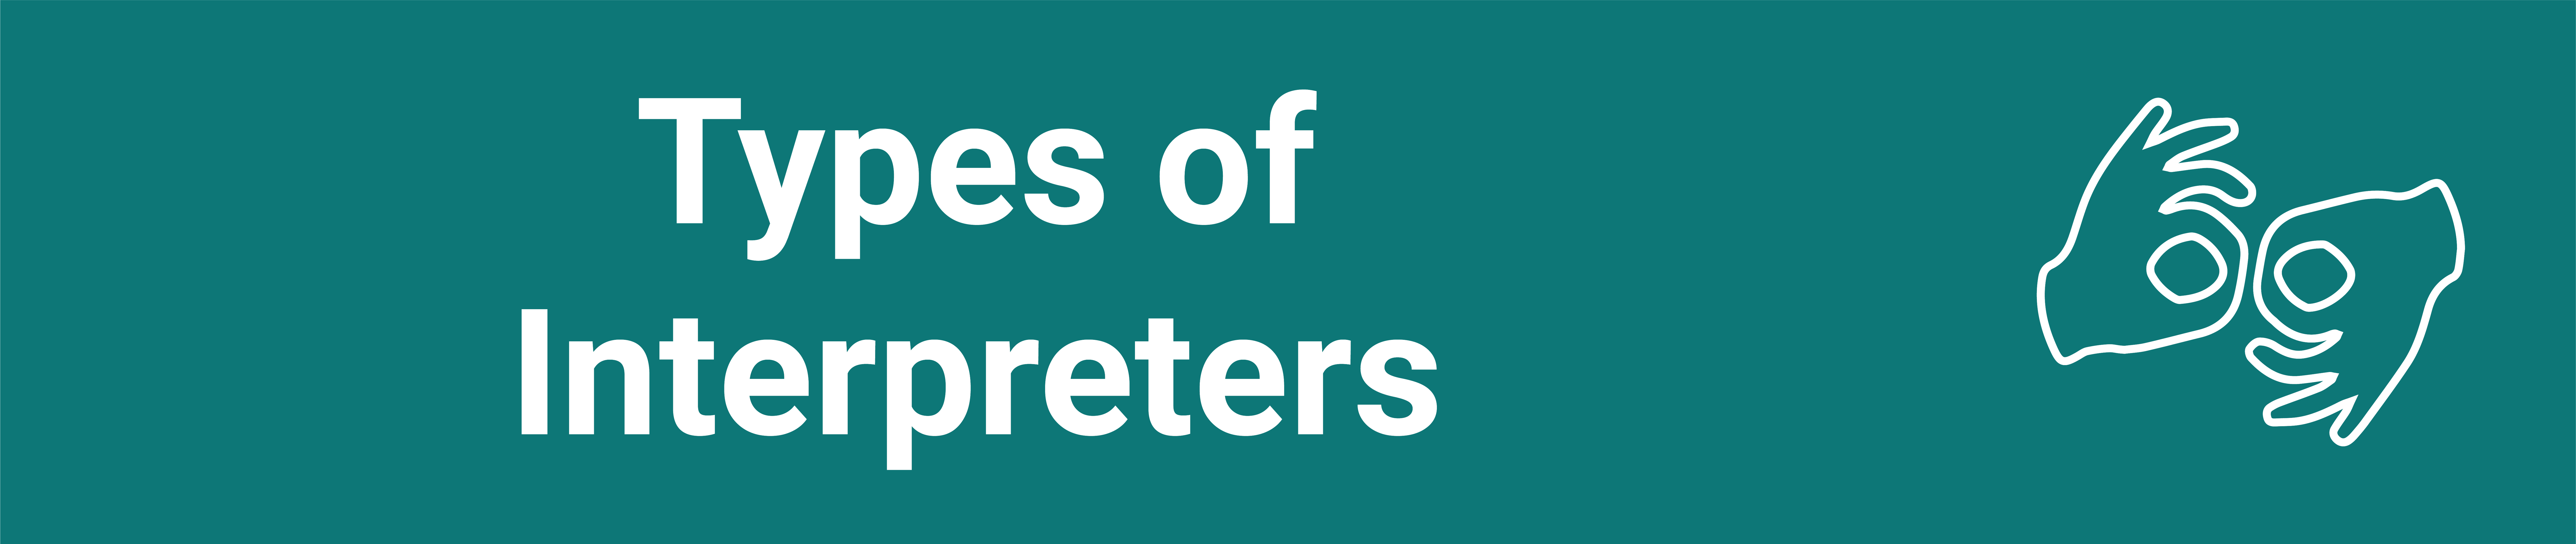 Teal background with an icon of a hands making the interpret sign Text: Types of Interpreters